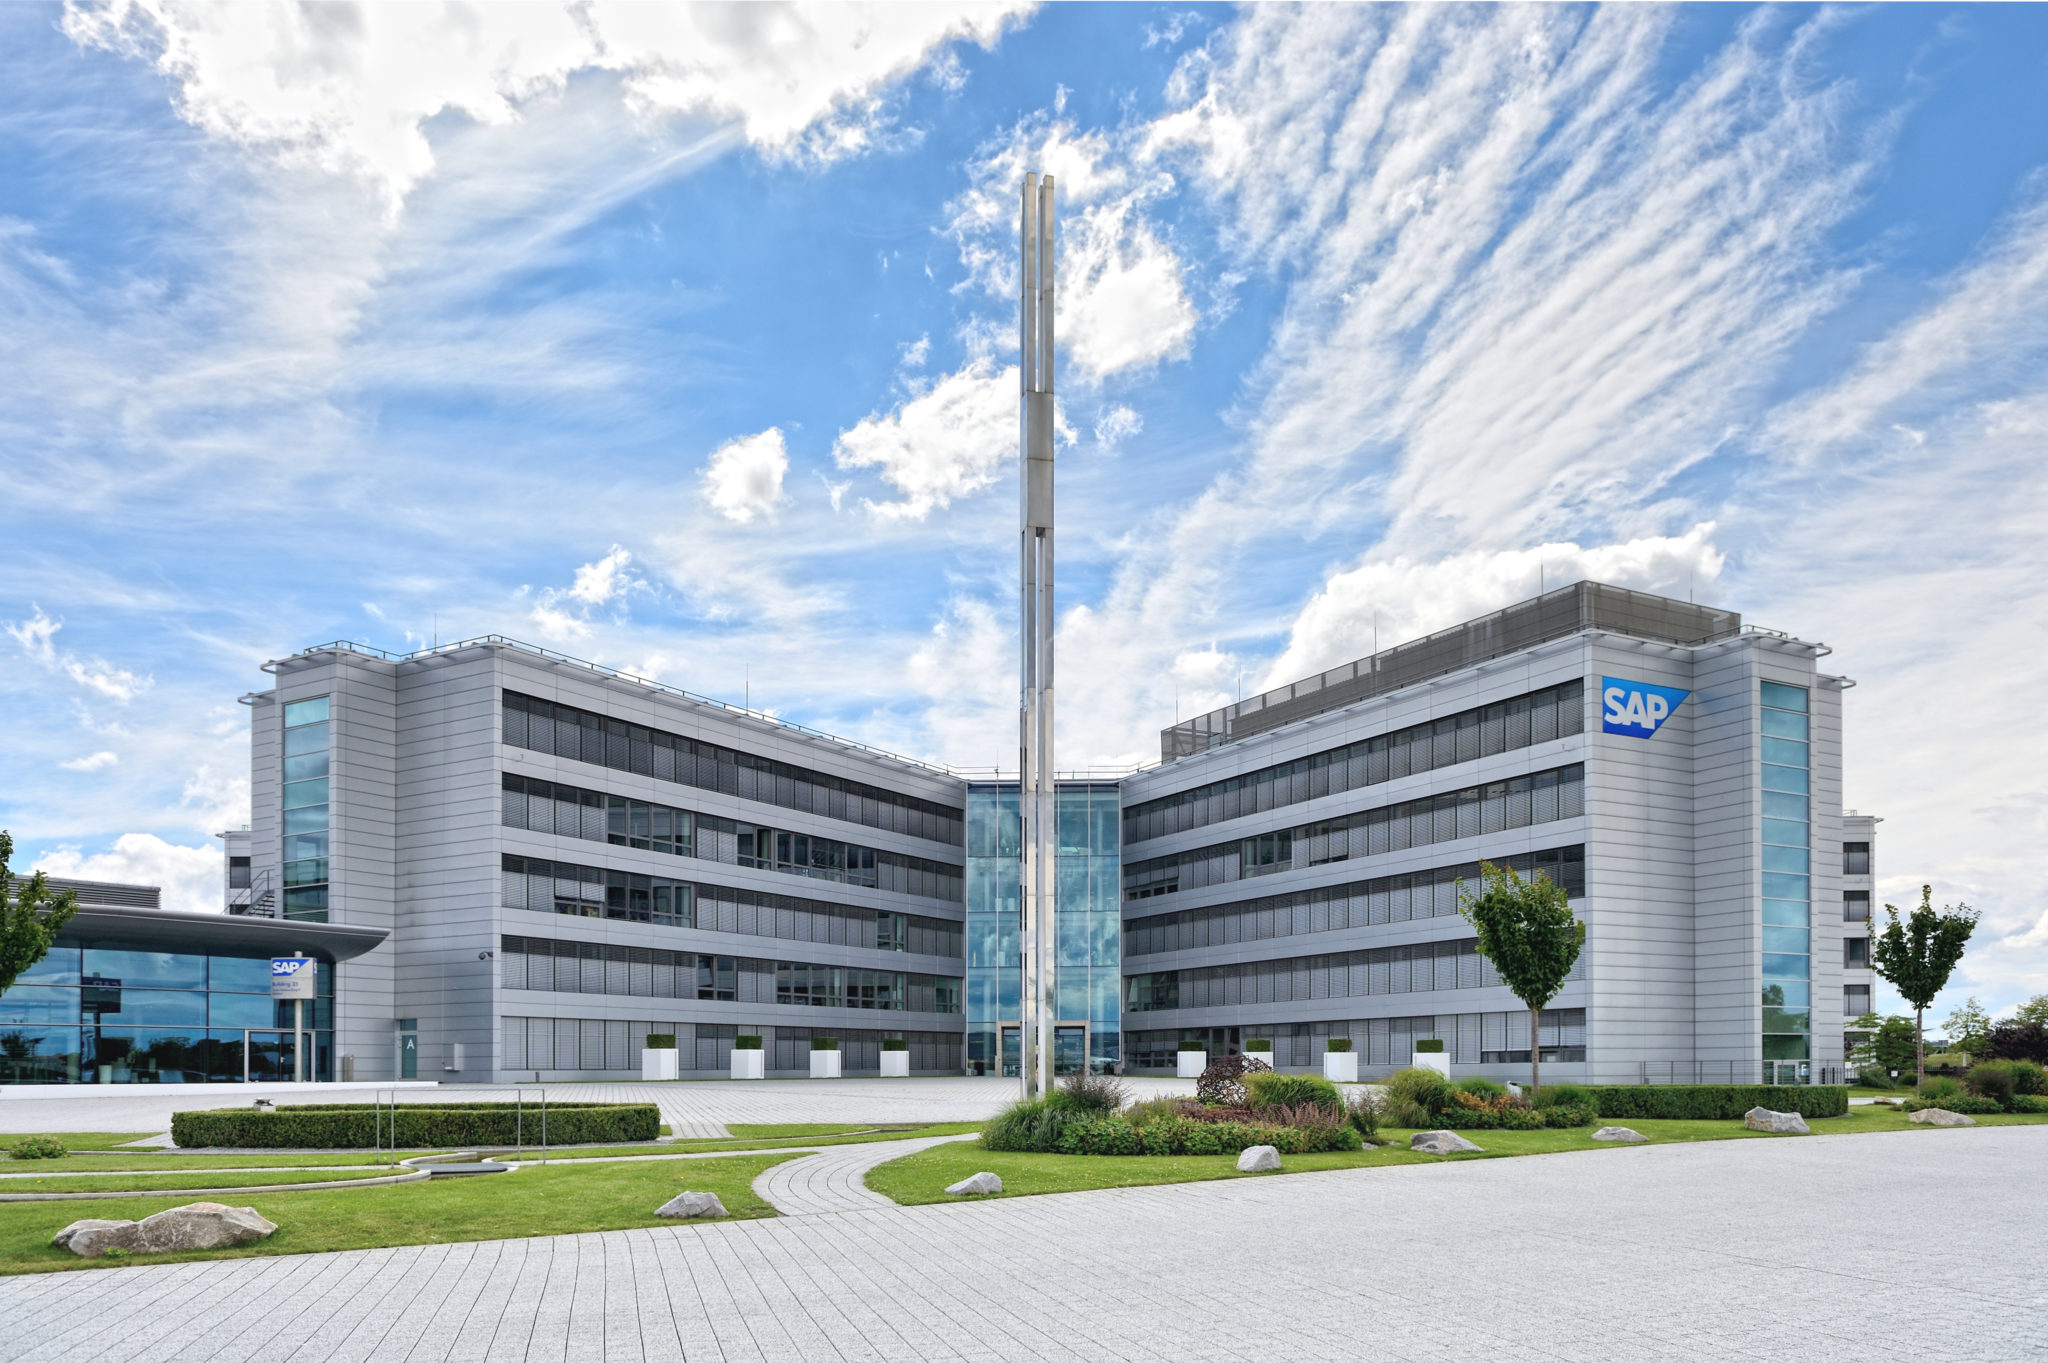 SAP Headquarters in Walldorf, Germany. Provided by SAP.